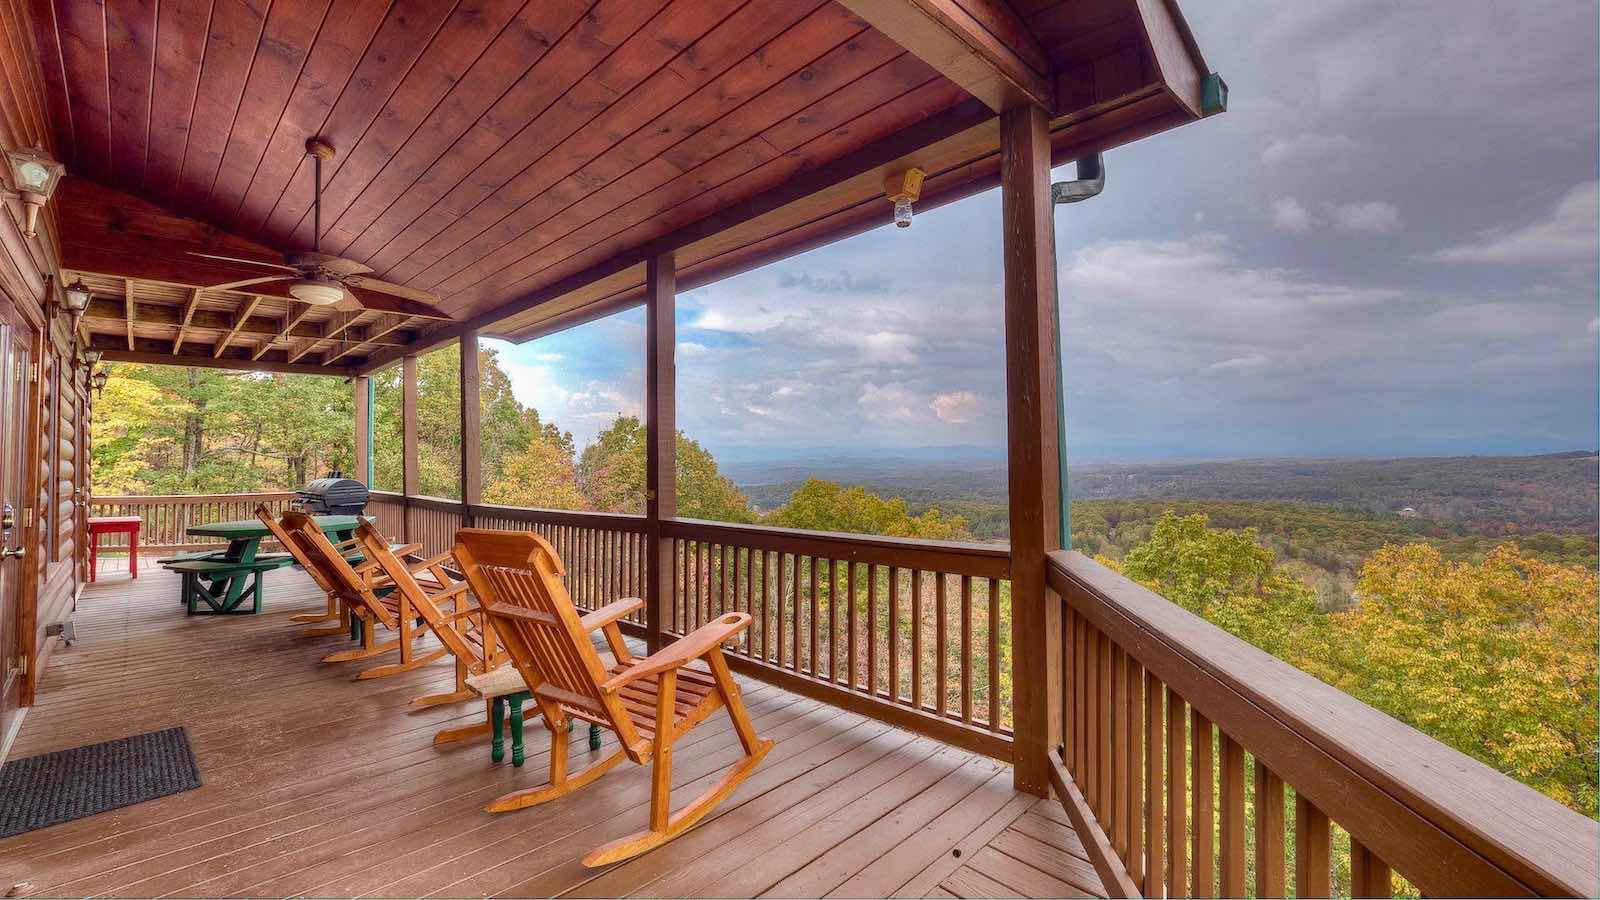 sky rentals lodge rental blue cabin in ga cabins georgia ridge cabinrentalsfirepit